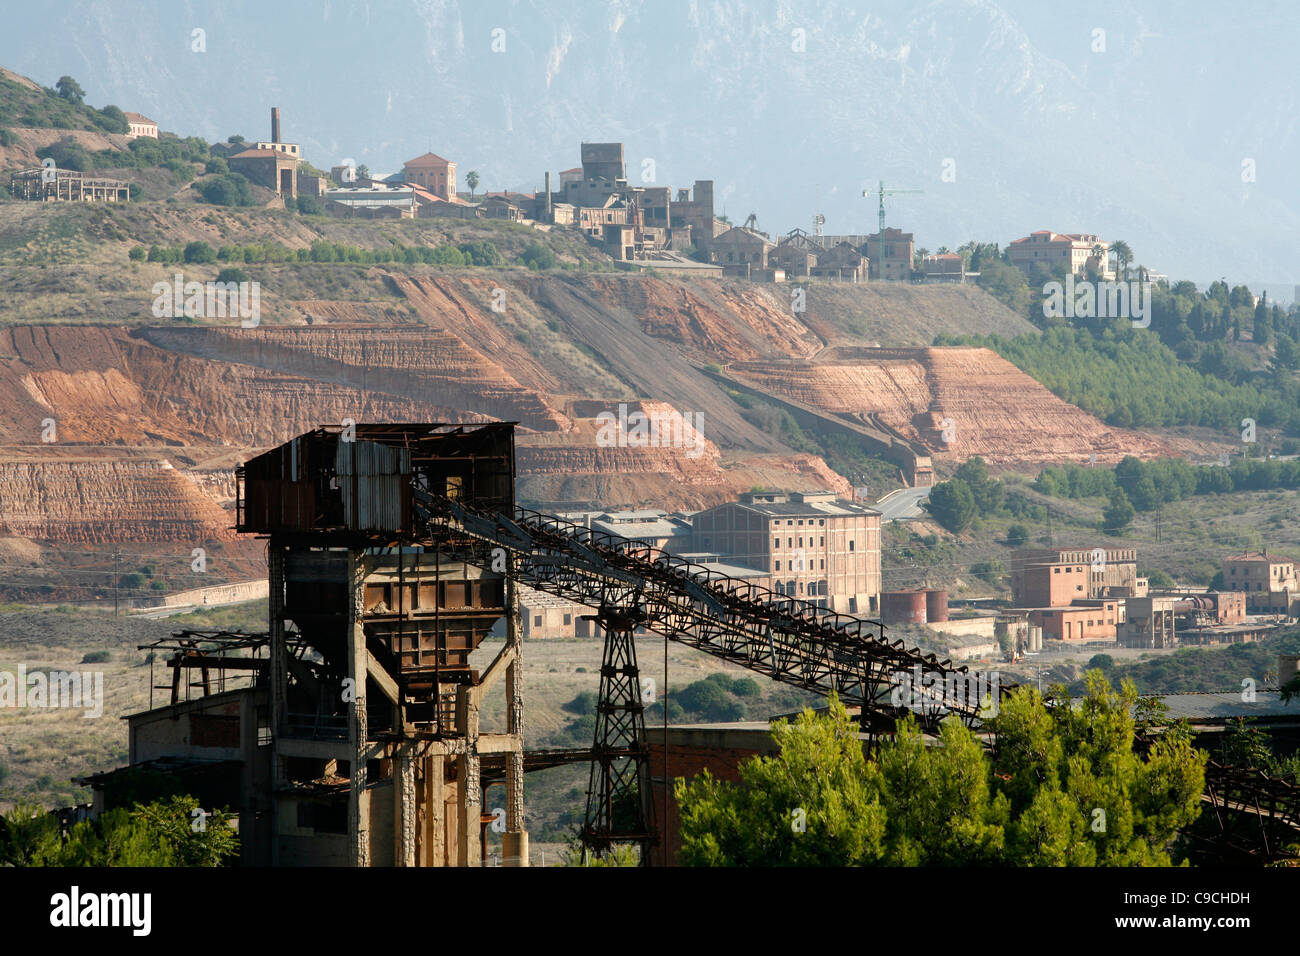 View over the Monteponi mines seen from the San Giovanni mines, Iglesias, Sardinia, Italy. - Stock Image